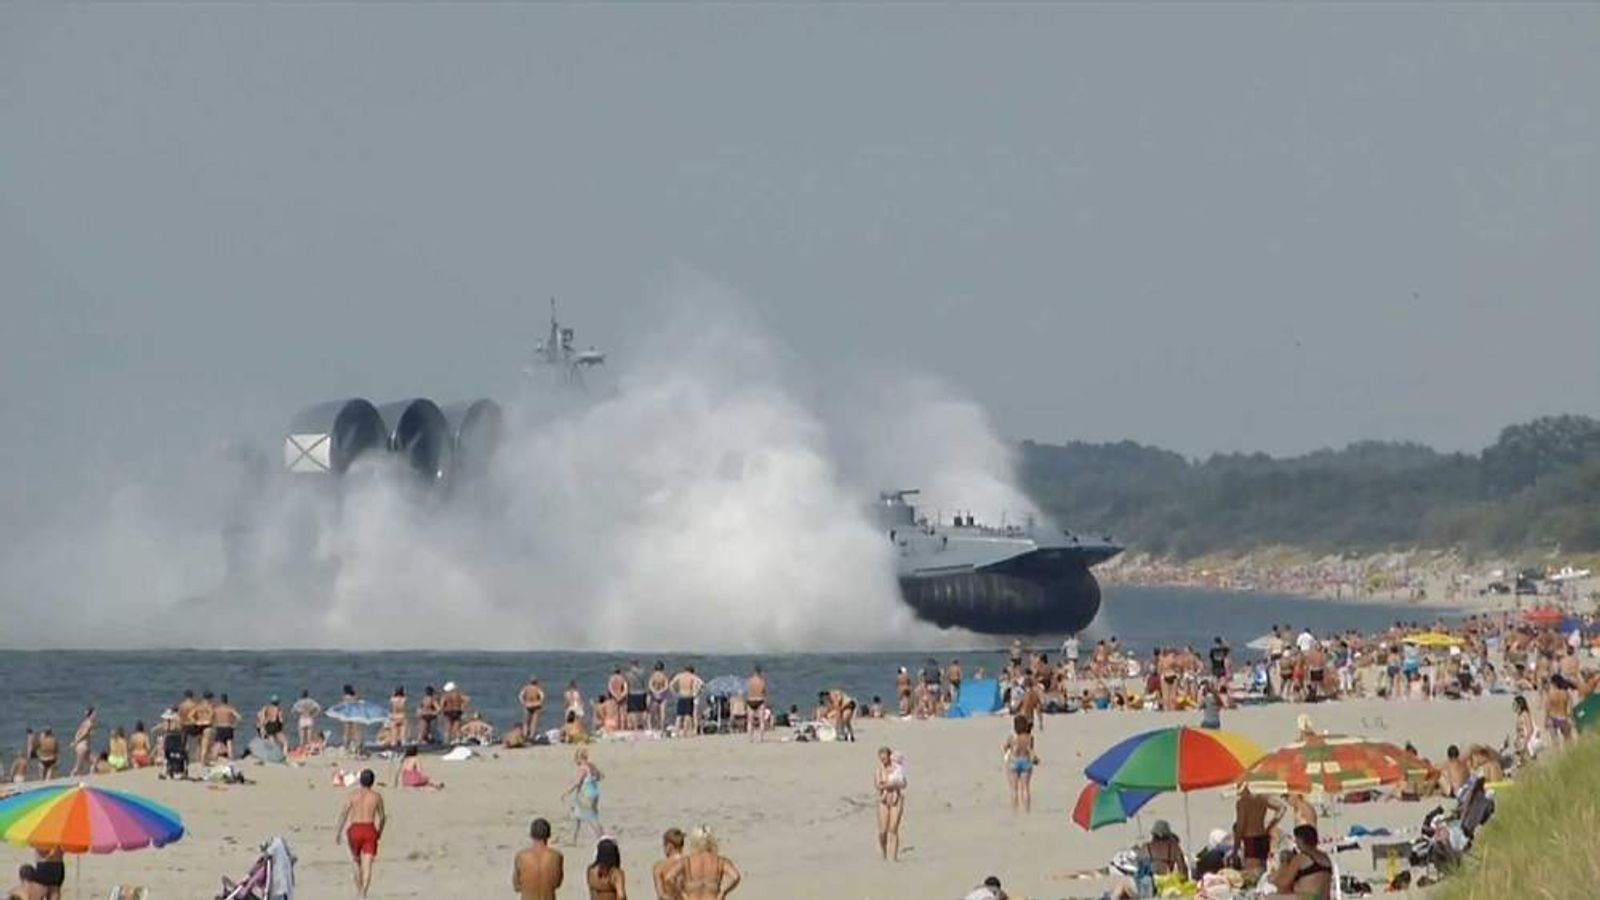 A Russian hovercraft lands on a busy beach